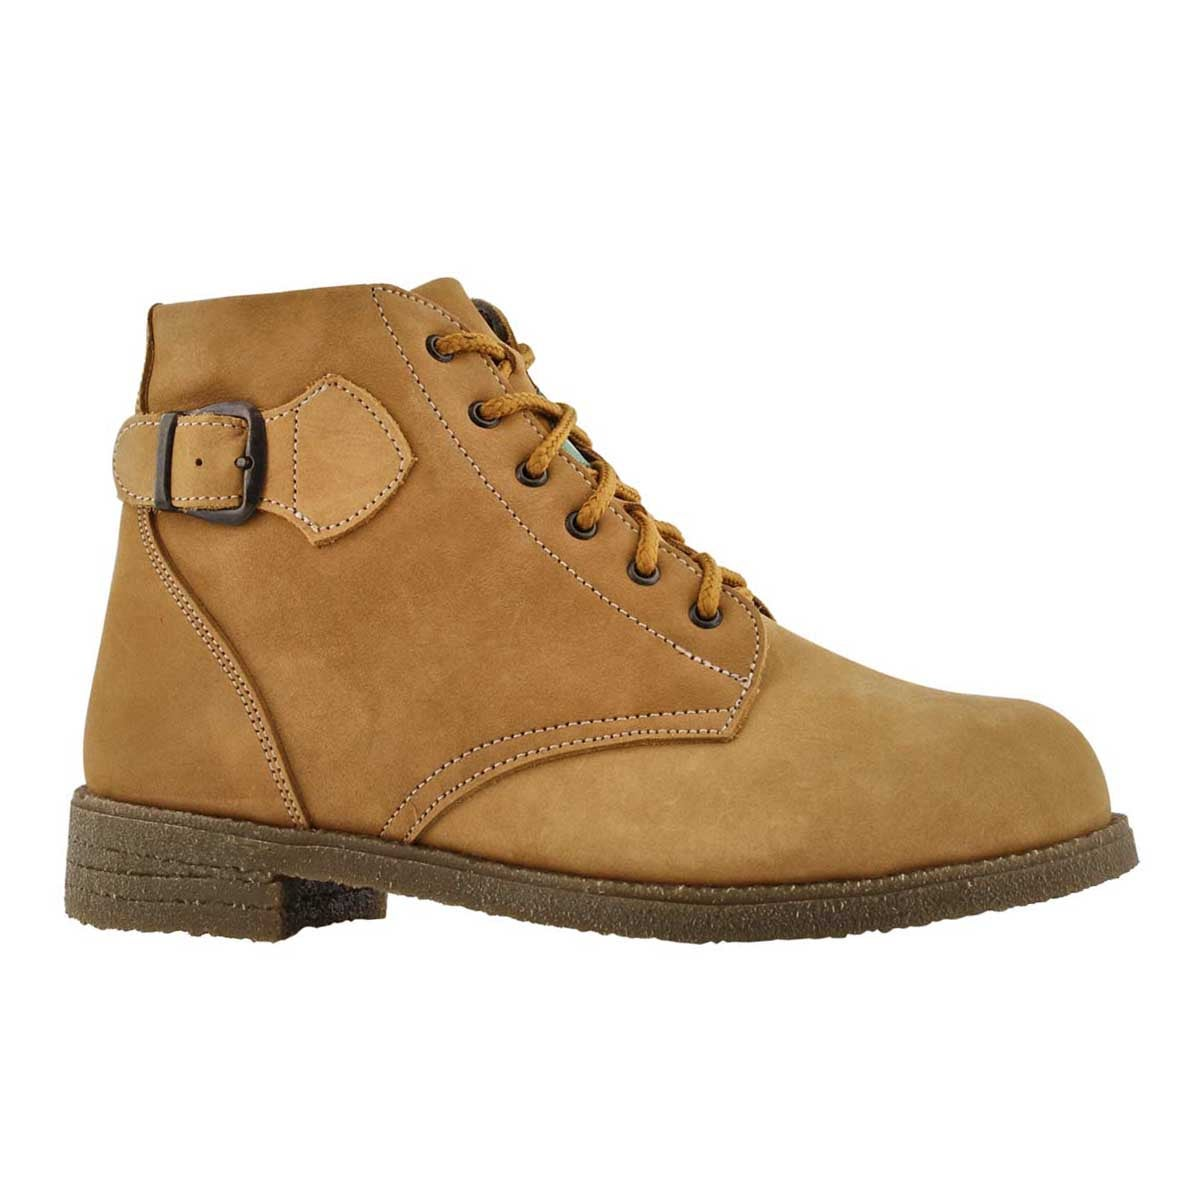 Lds Aventura tan CSA lace up boot